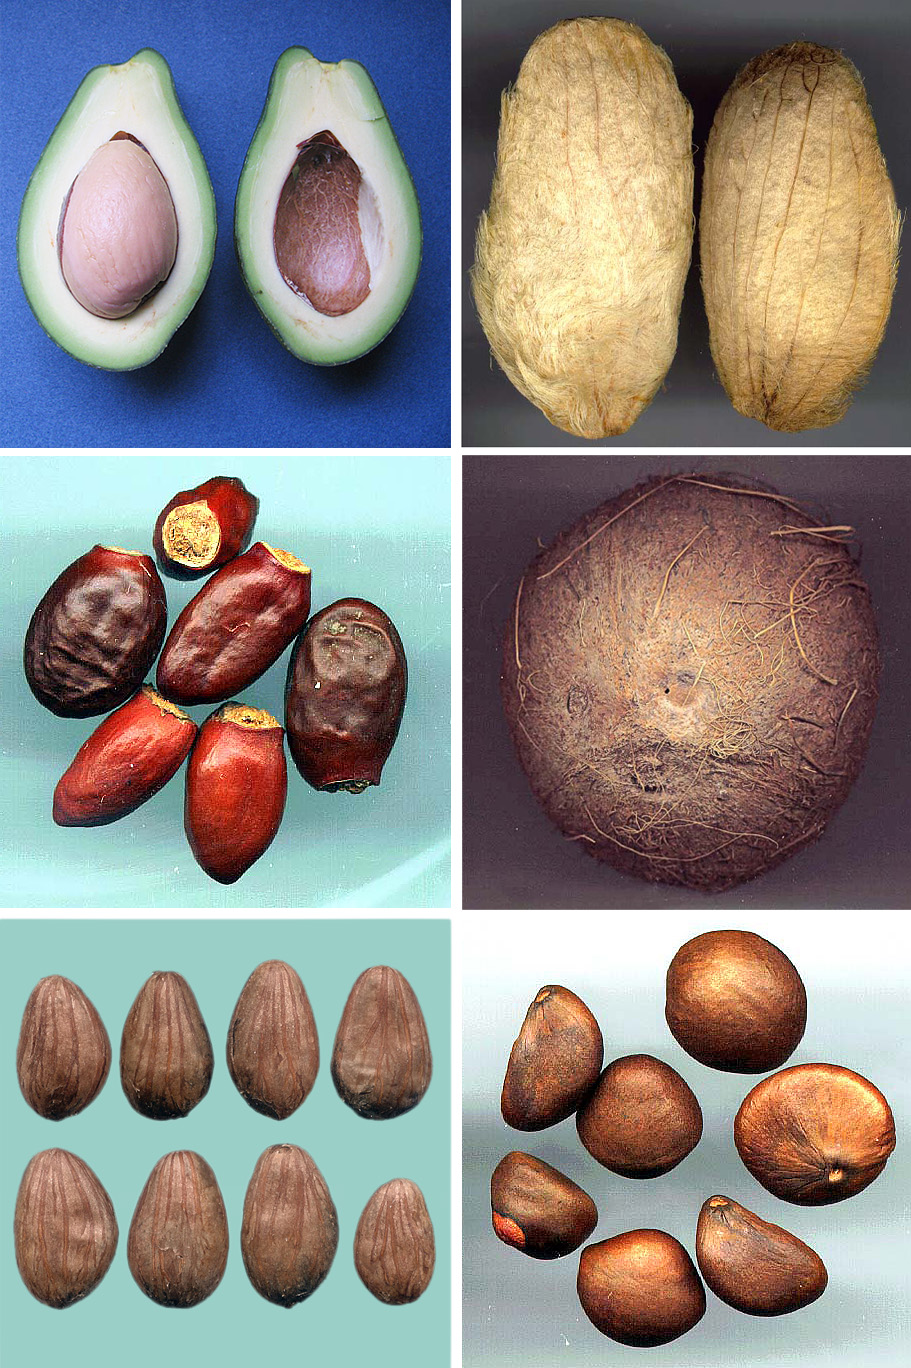 File:Recalcitrant tropical seed jpg - Wikimedia Commons